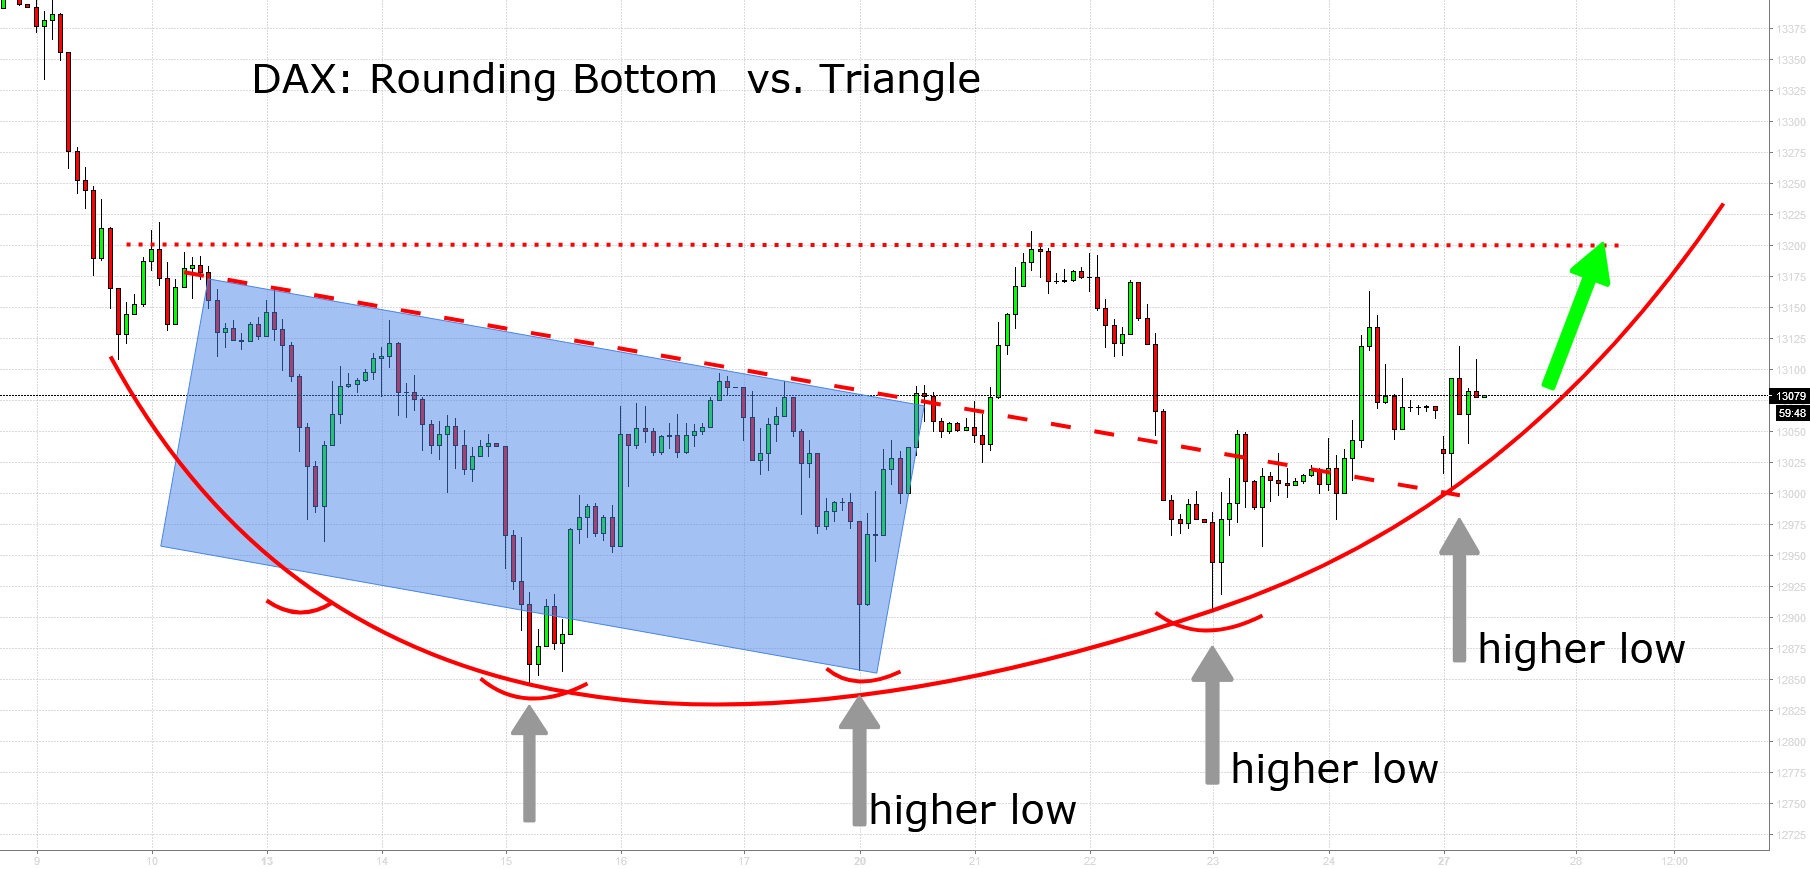 DAX: Rounding Bottom Supported By Fundamentals